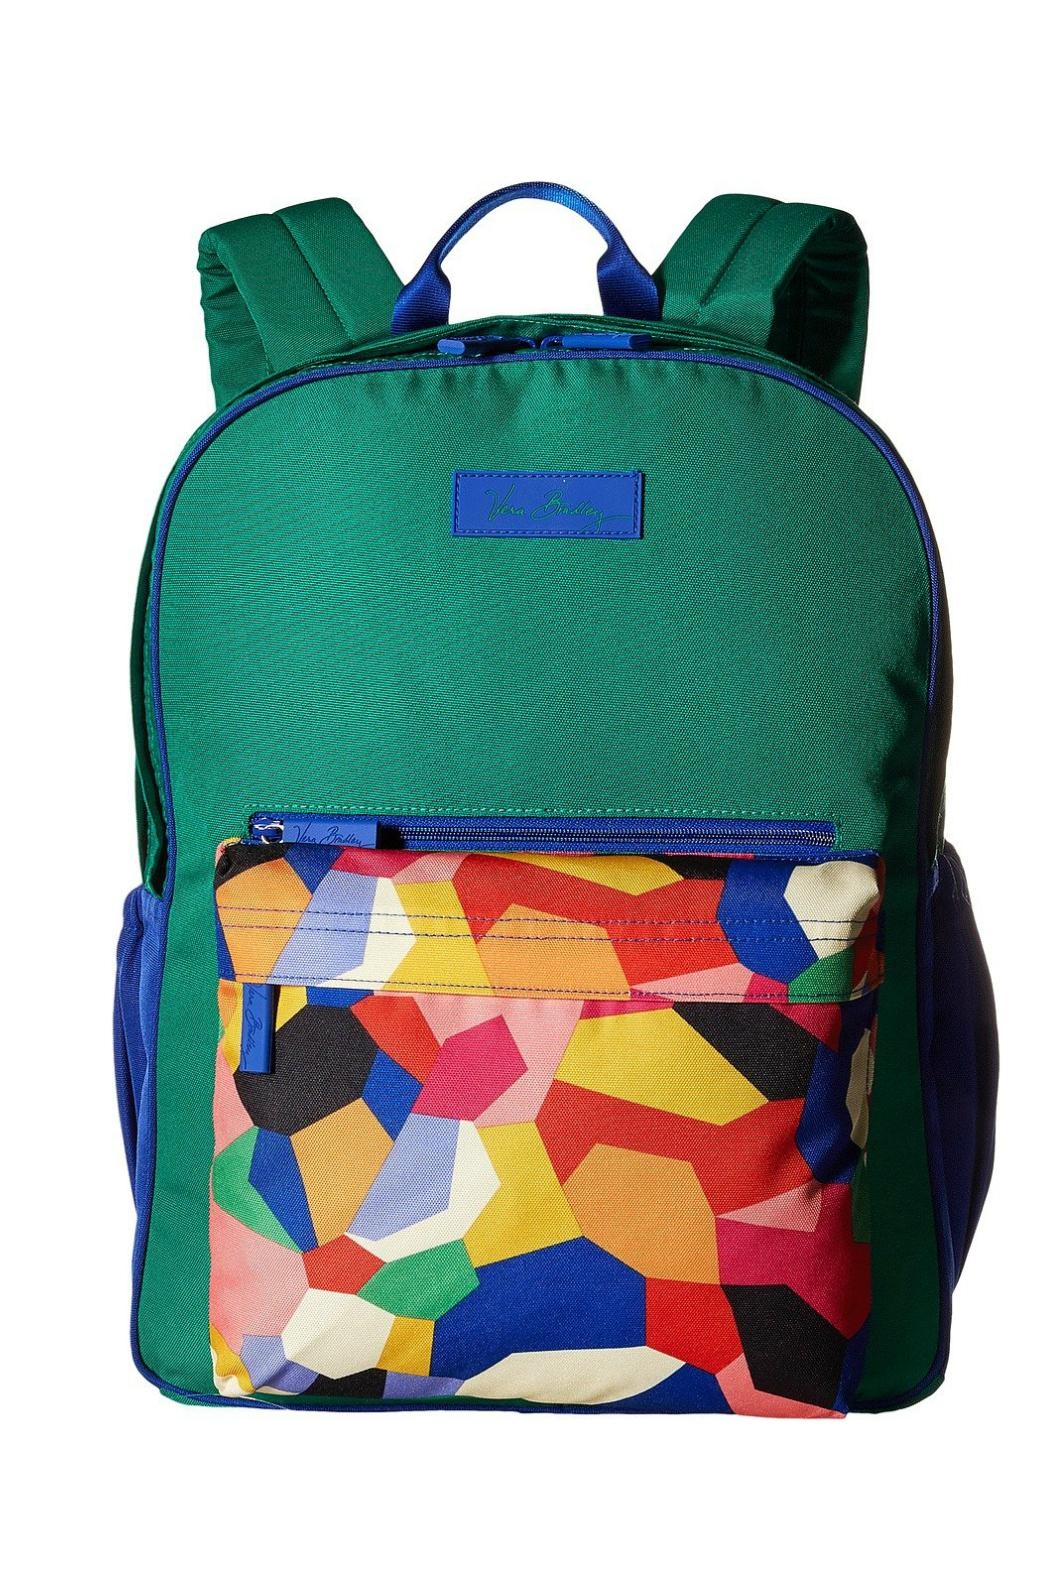 a29fa82d4532 Vera Bradley Color Block Backpack from Kentucky by Mimi s Gift Gallery